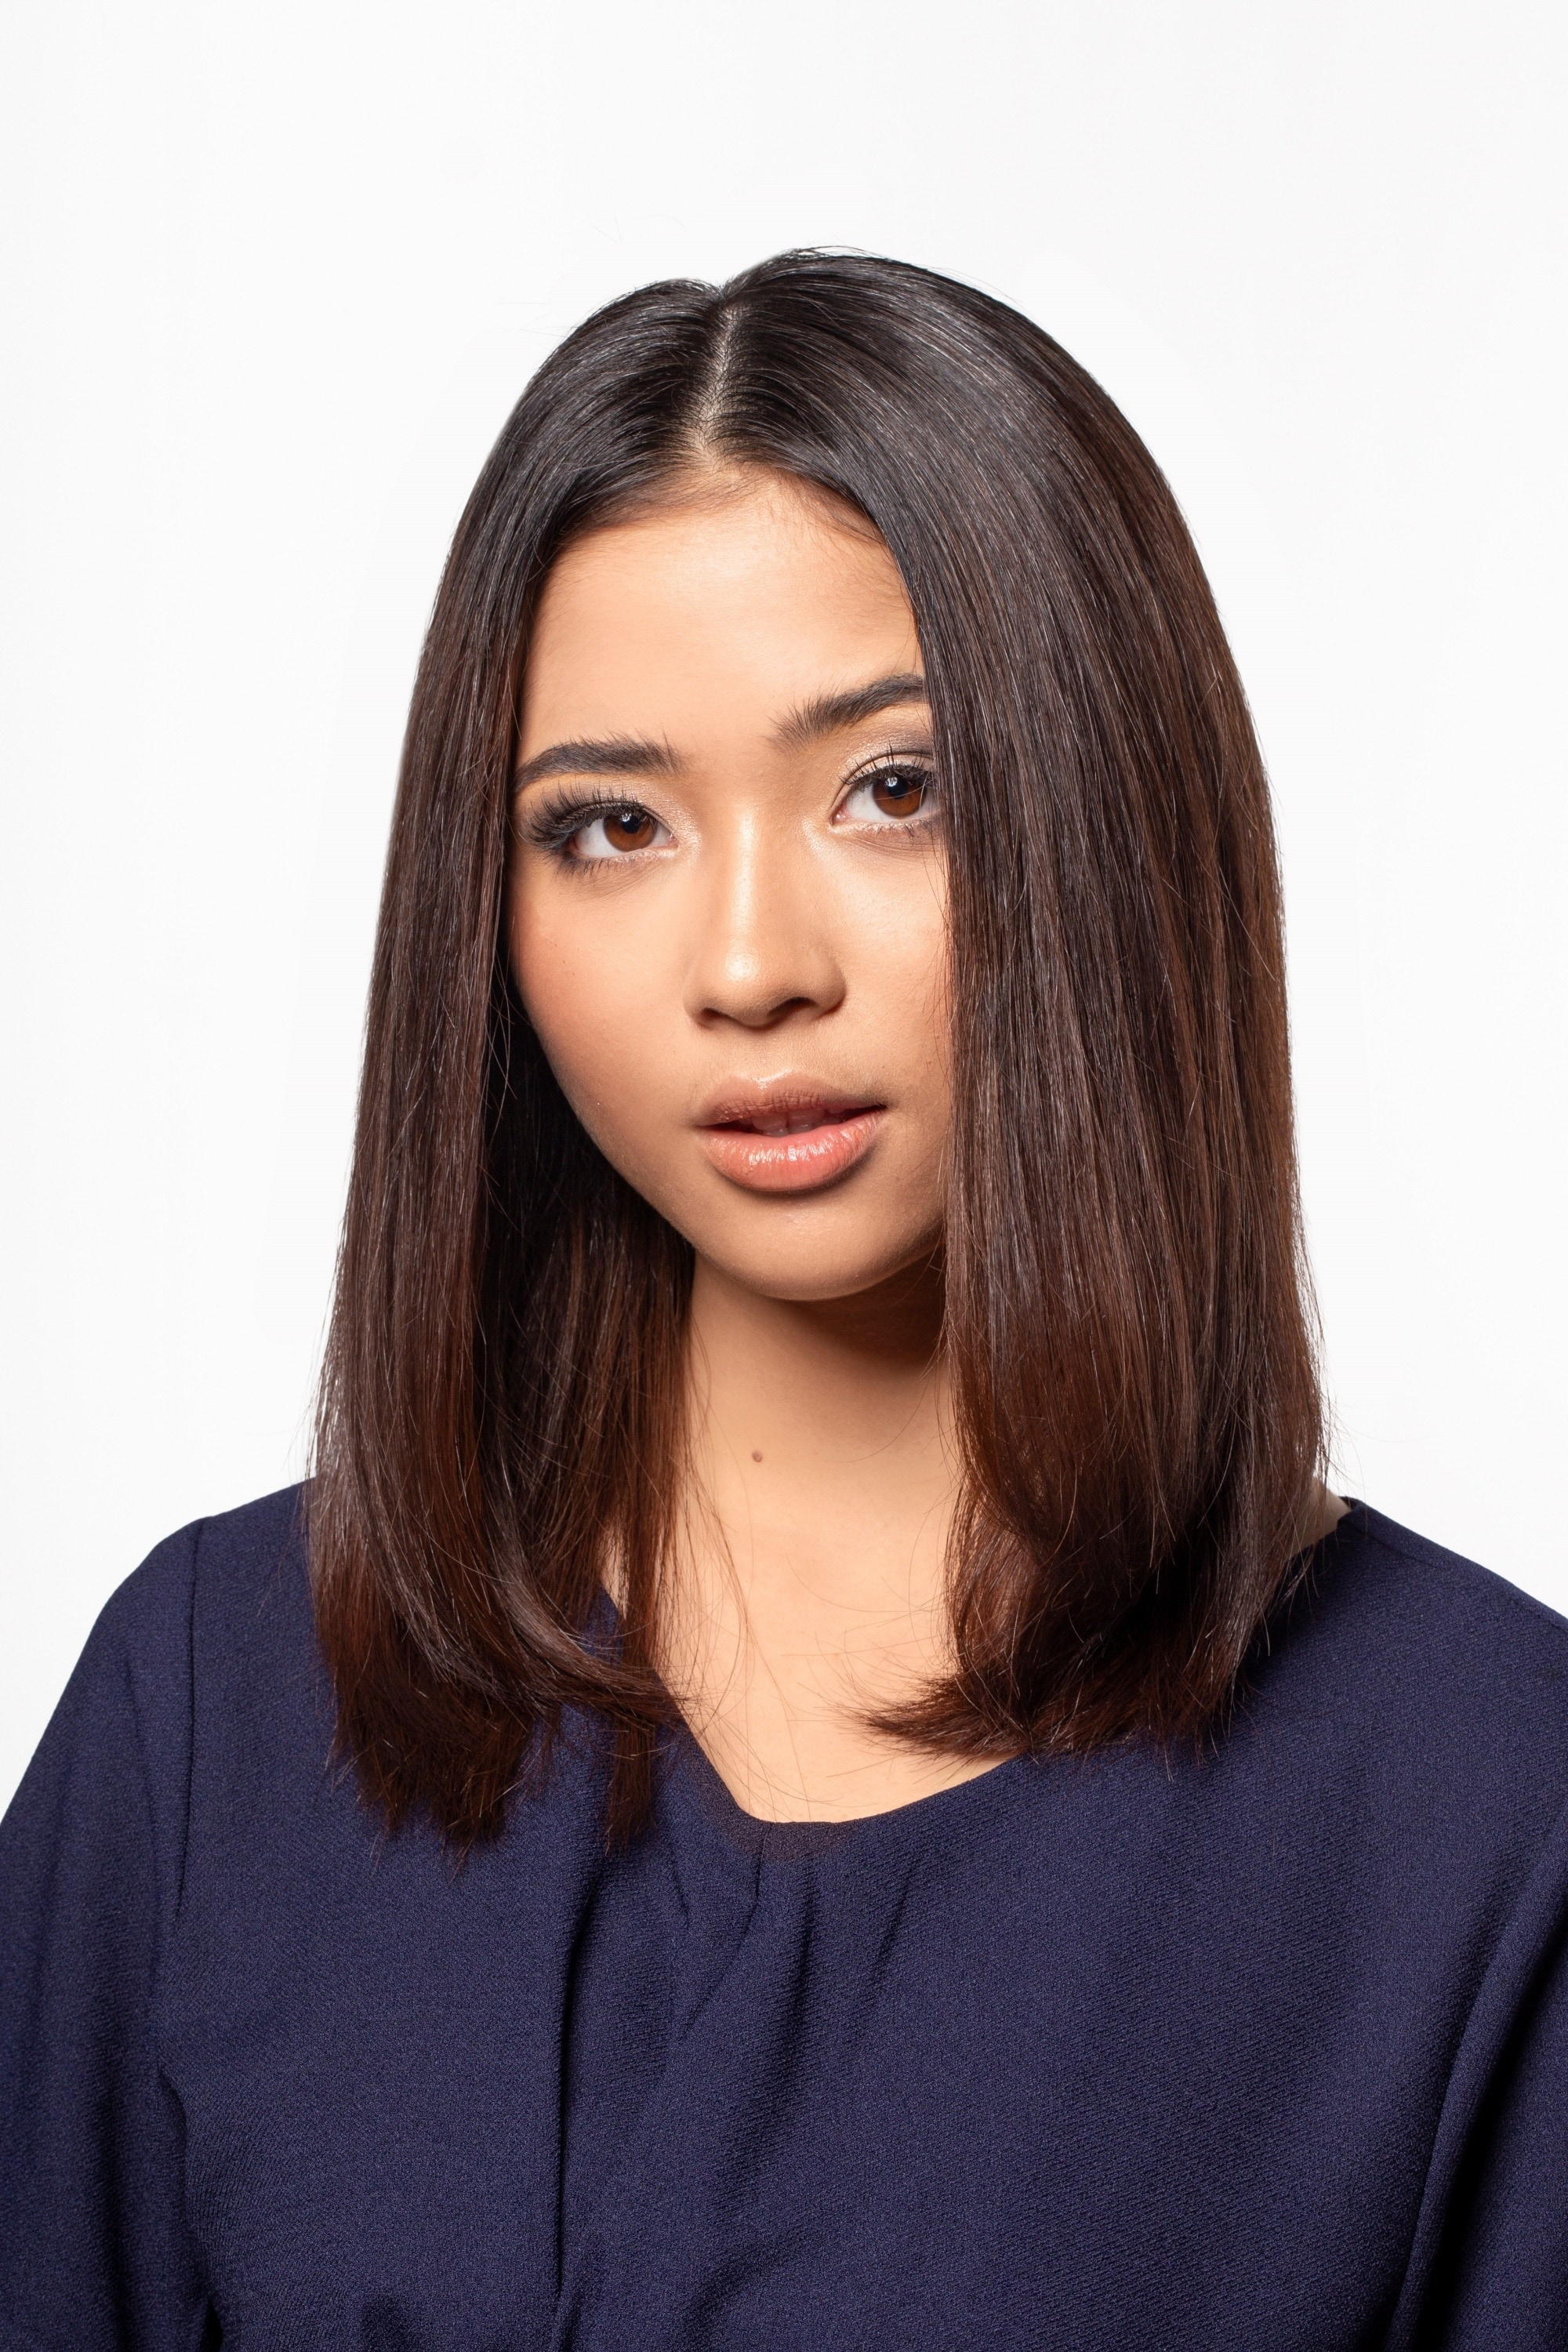 Asian woman with straight shoulder-length dark hair